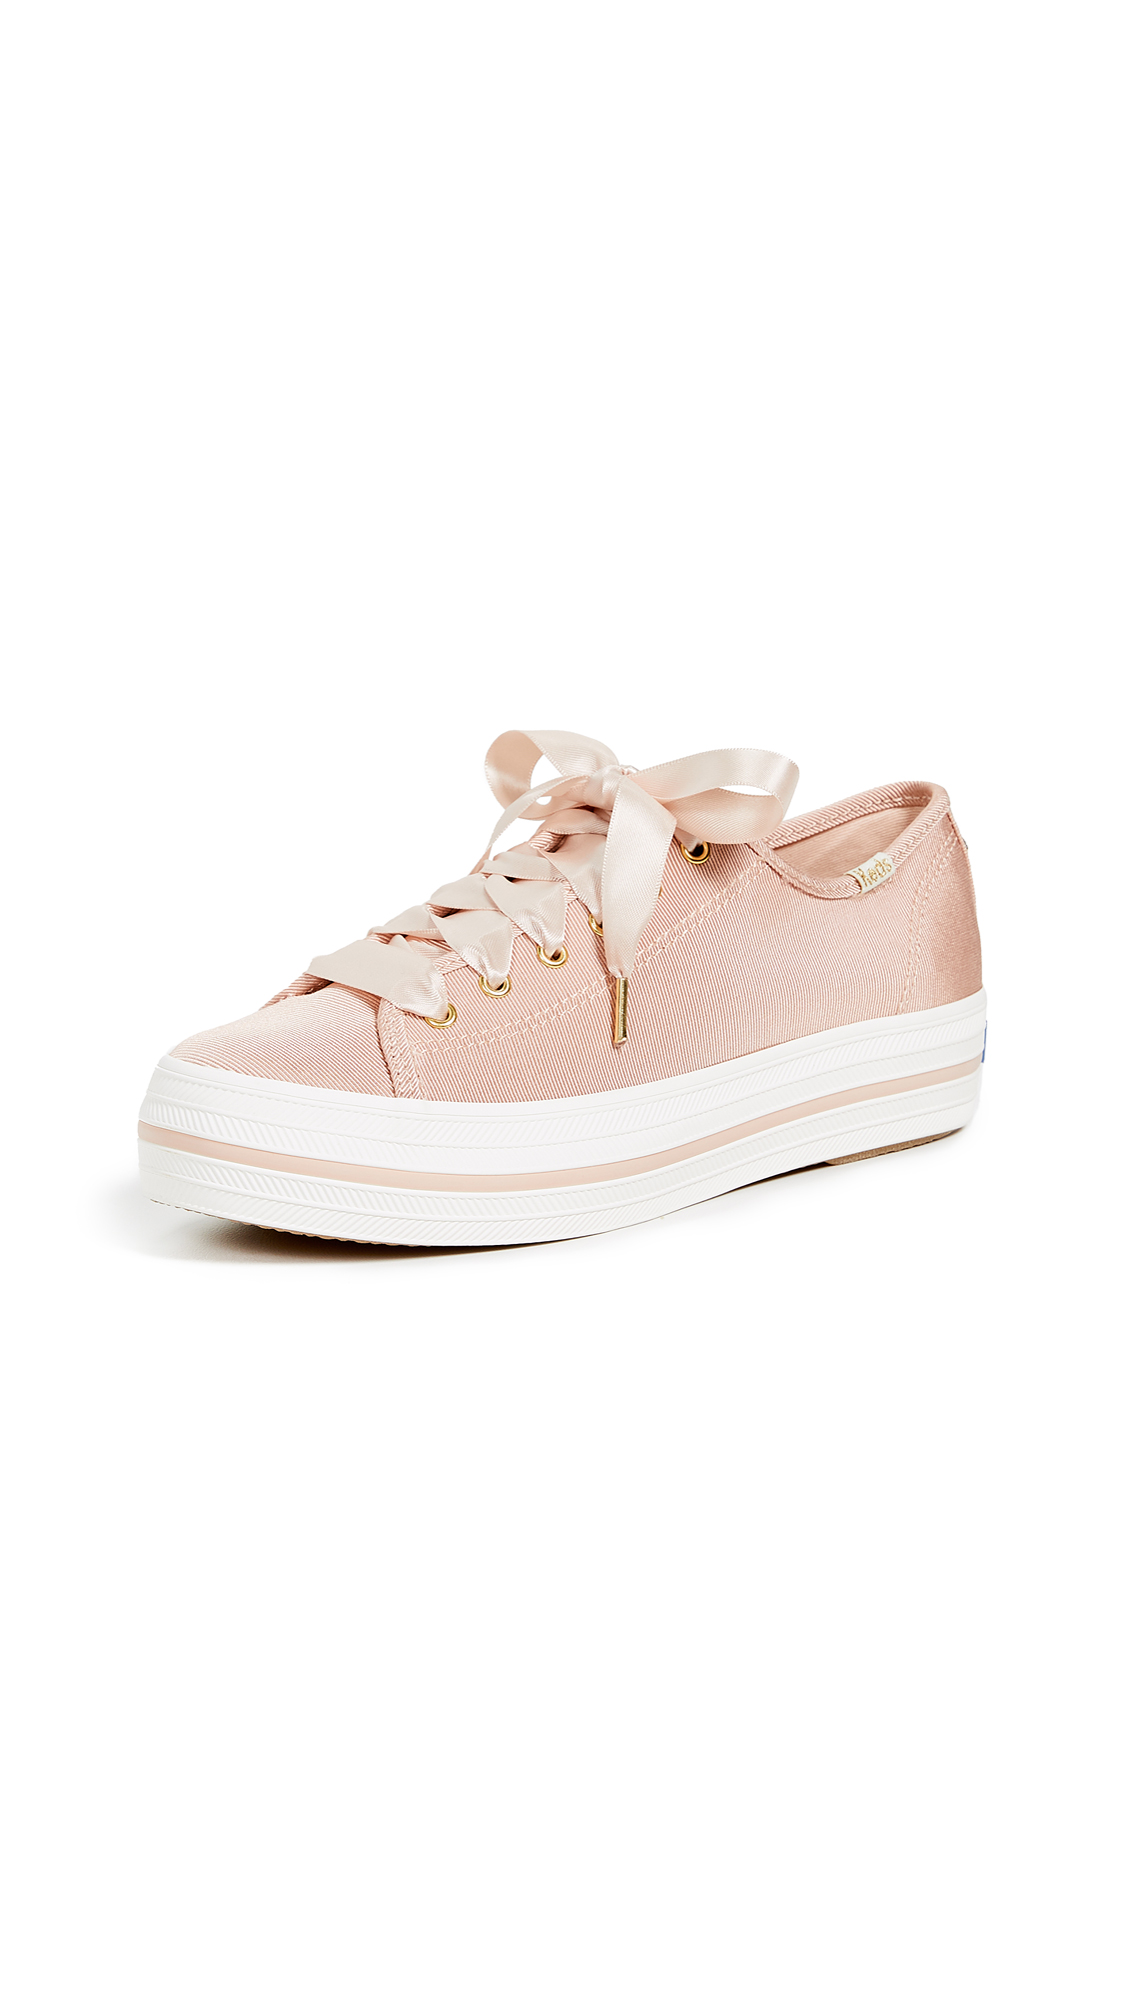 Keds x Kate Spade Triple Kick Sneakers - Blush